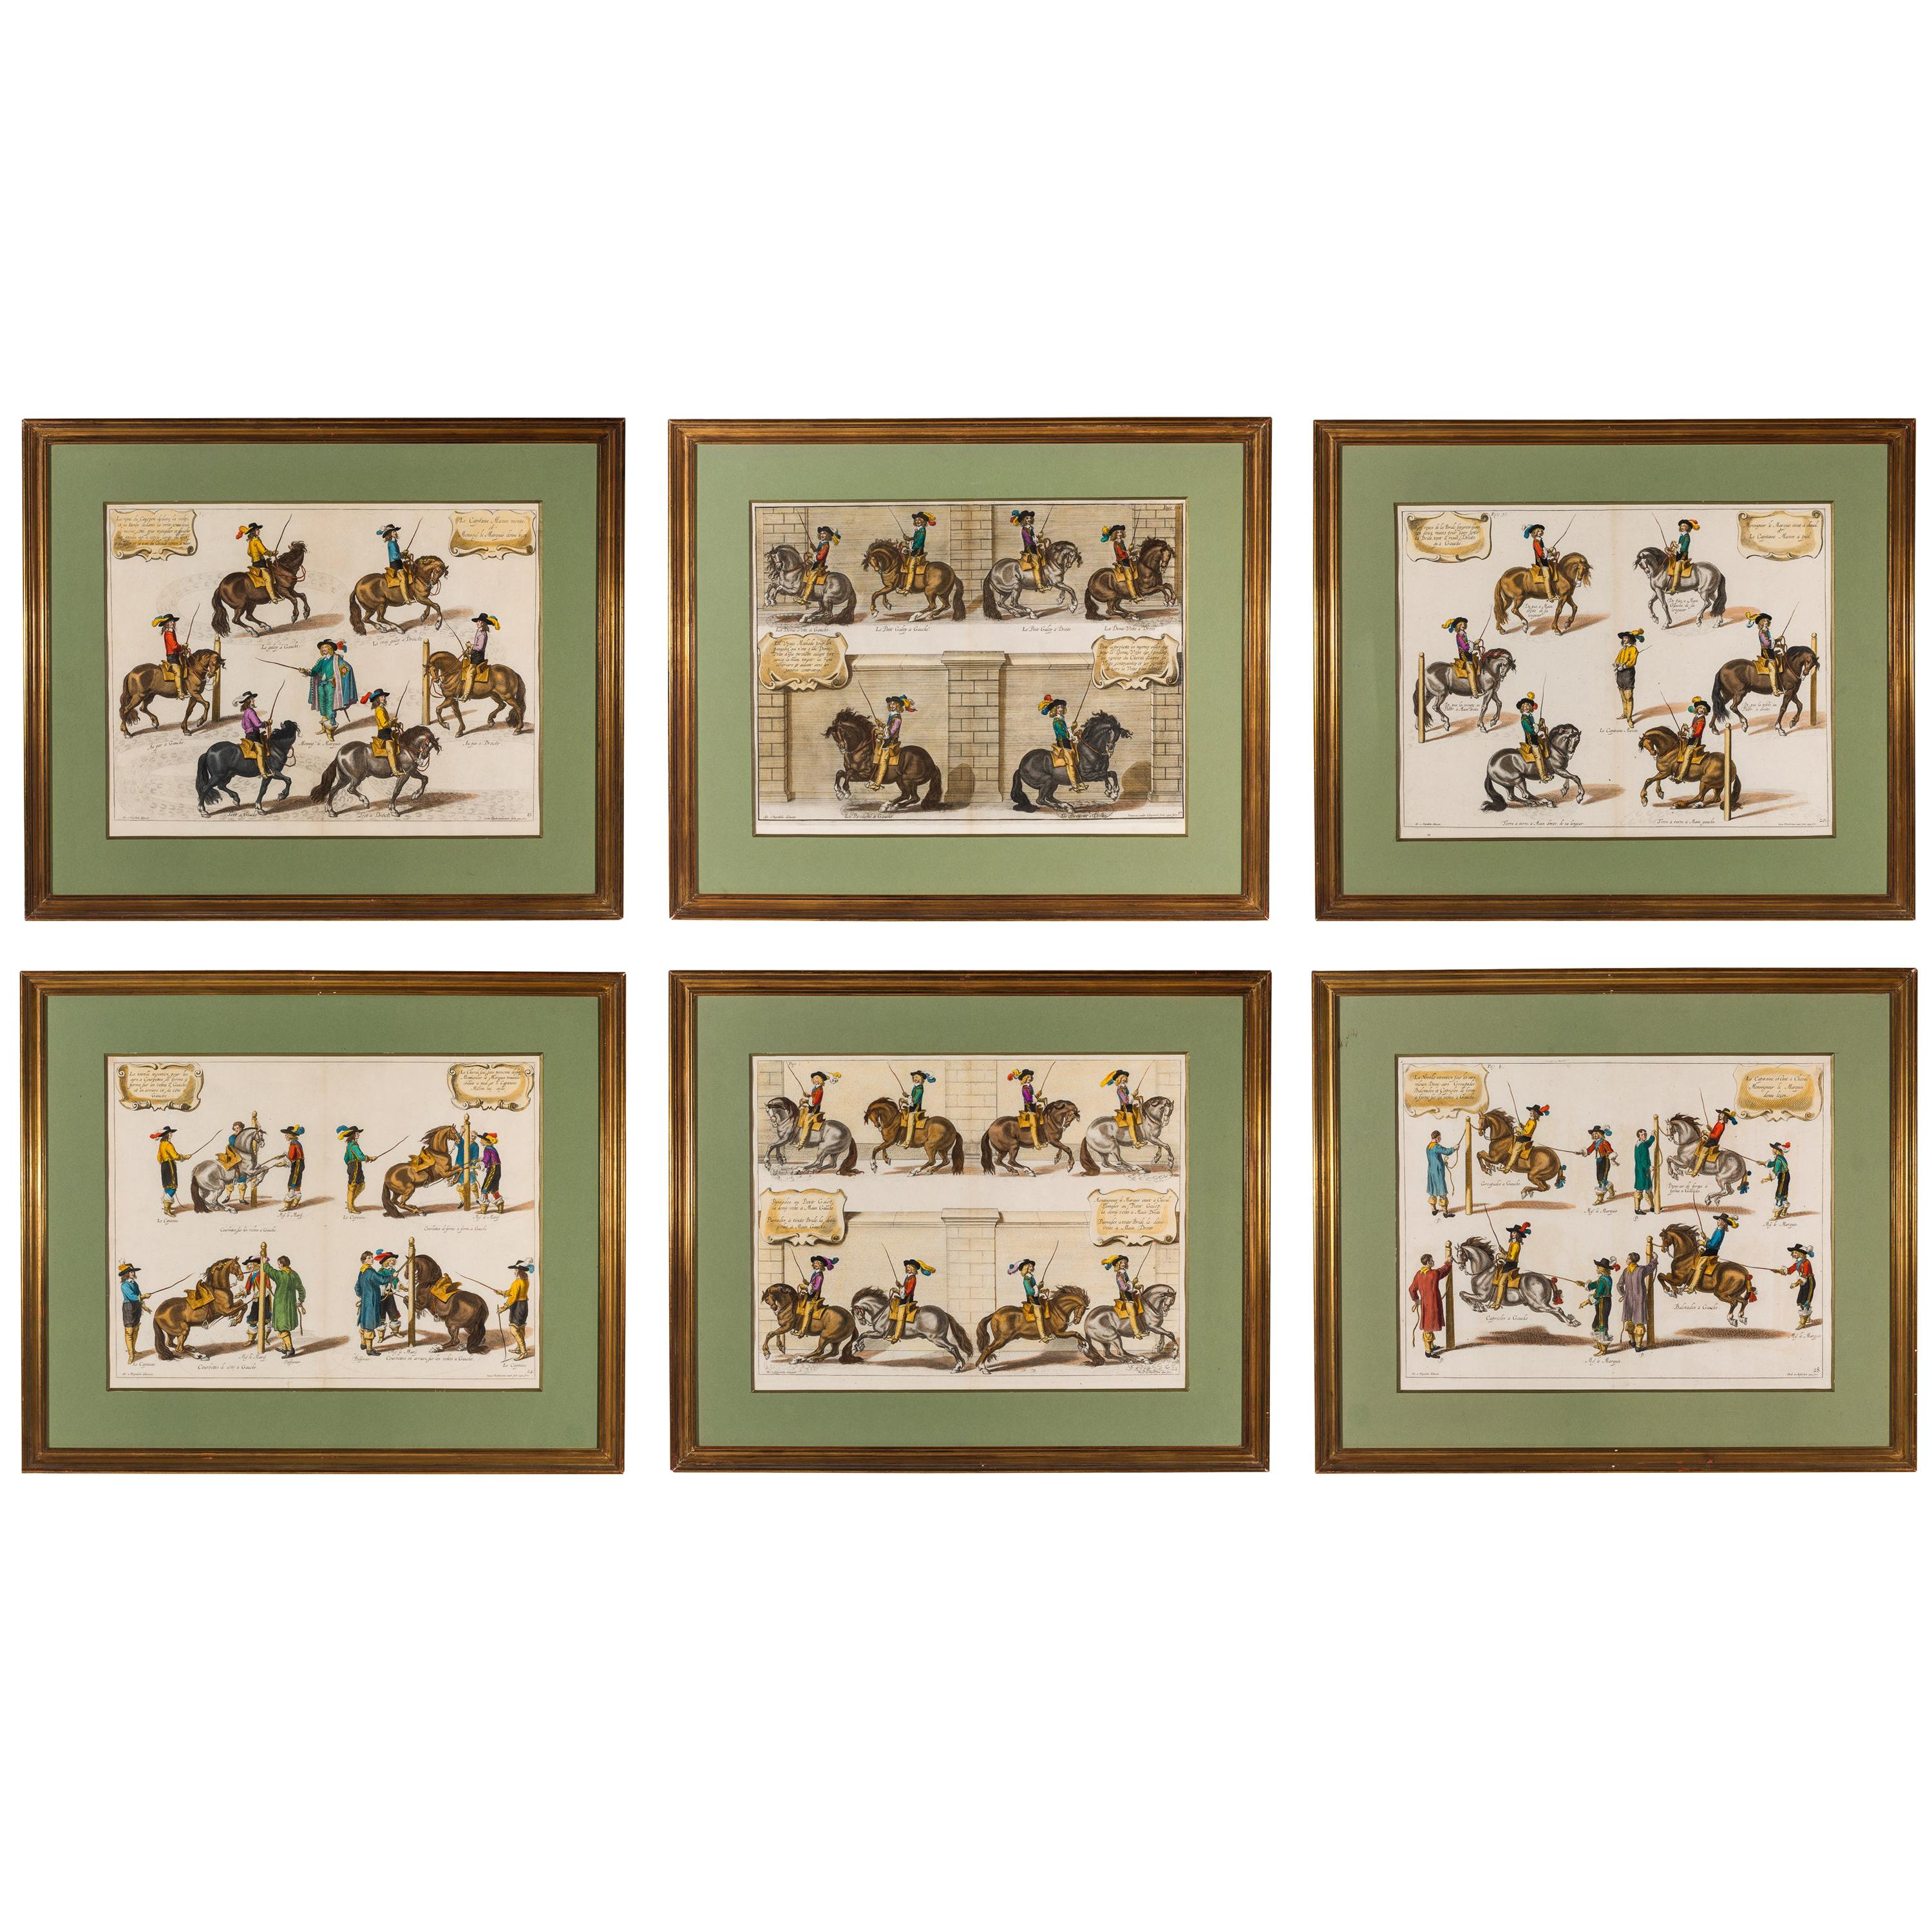 Set of Six 18th Century Equestrian Engravings of Dressage, after Diepenbeeck